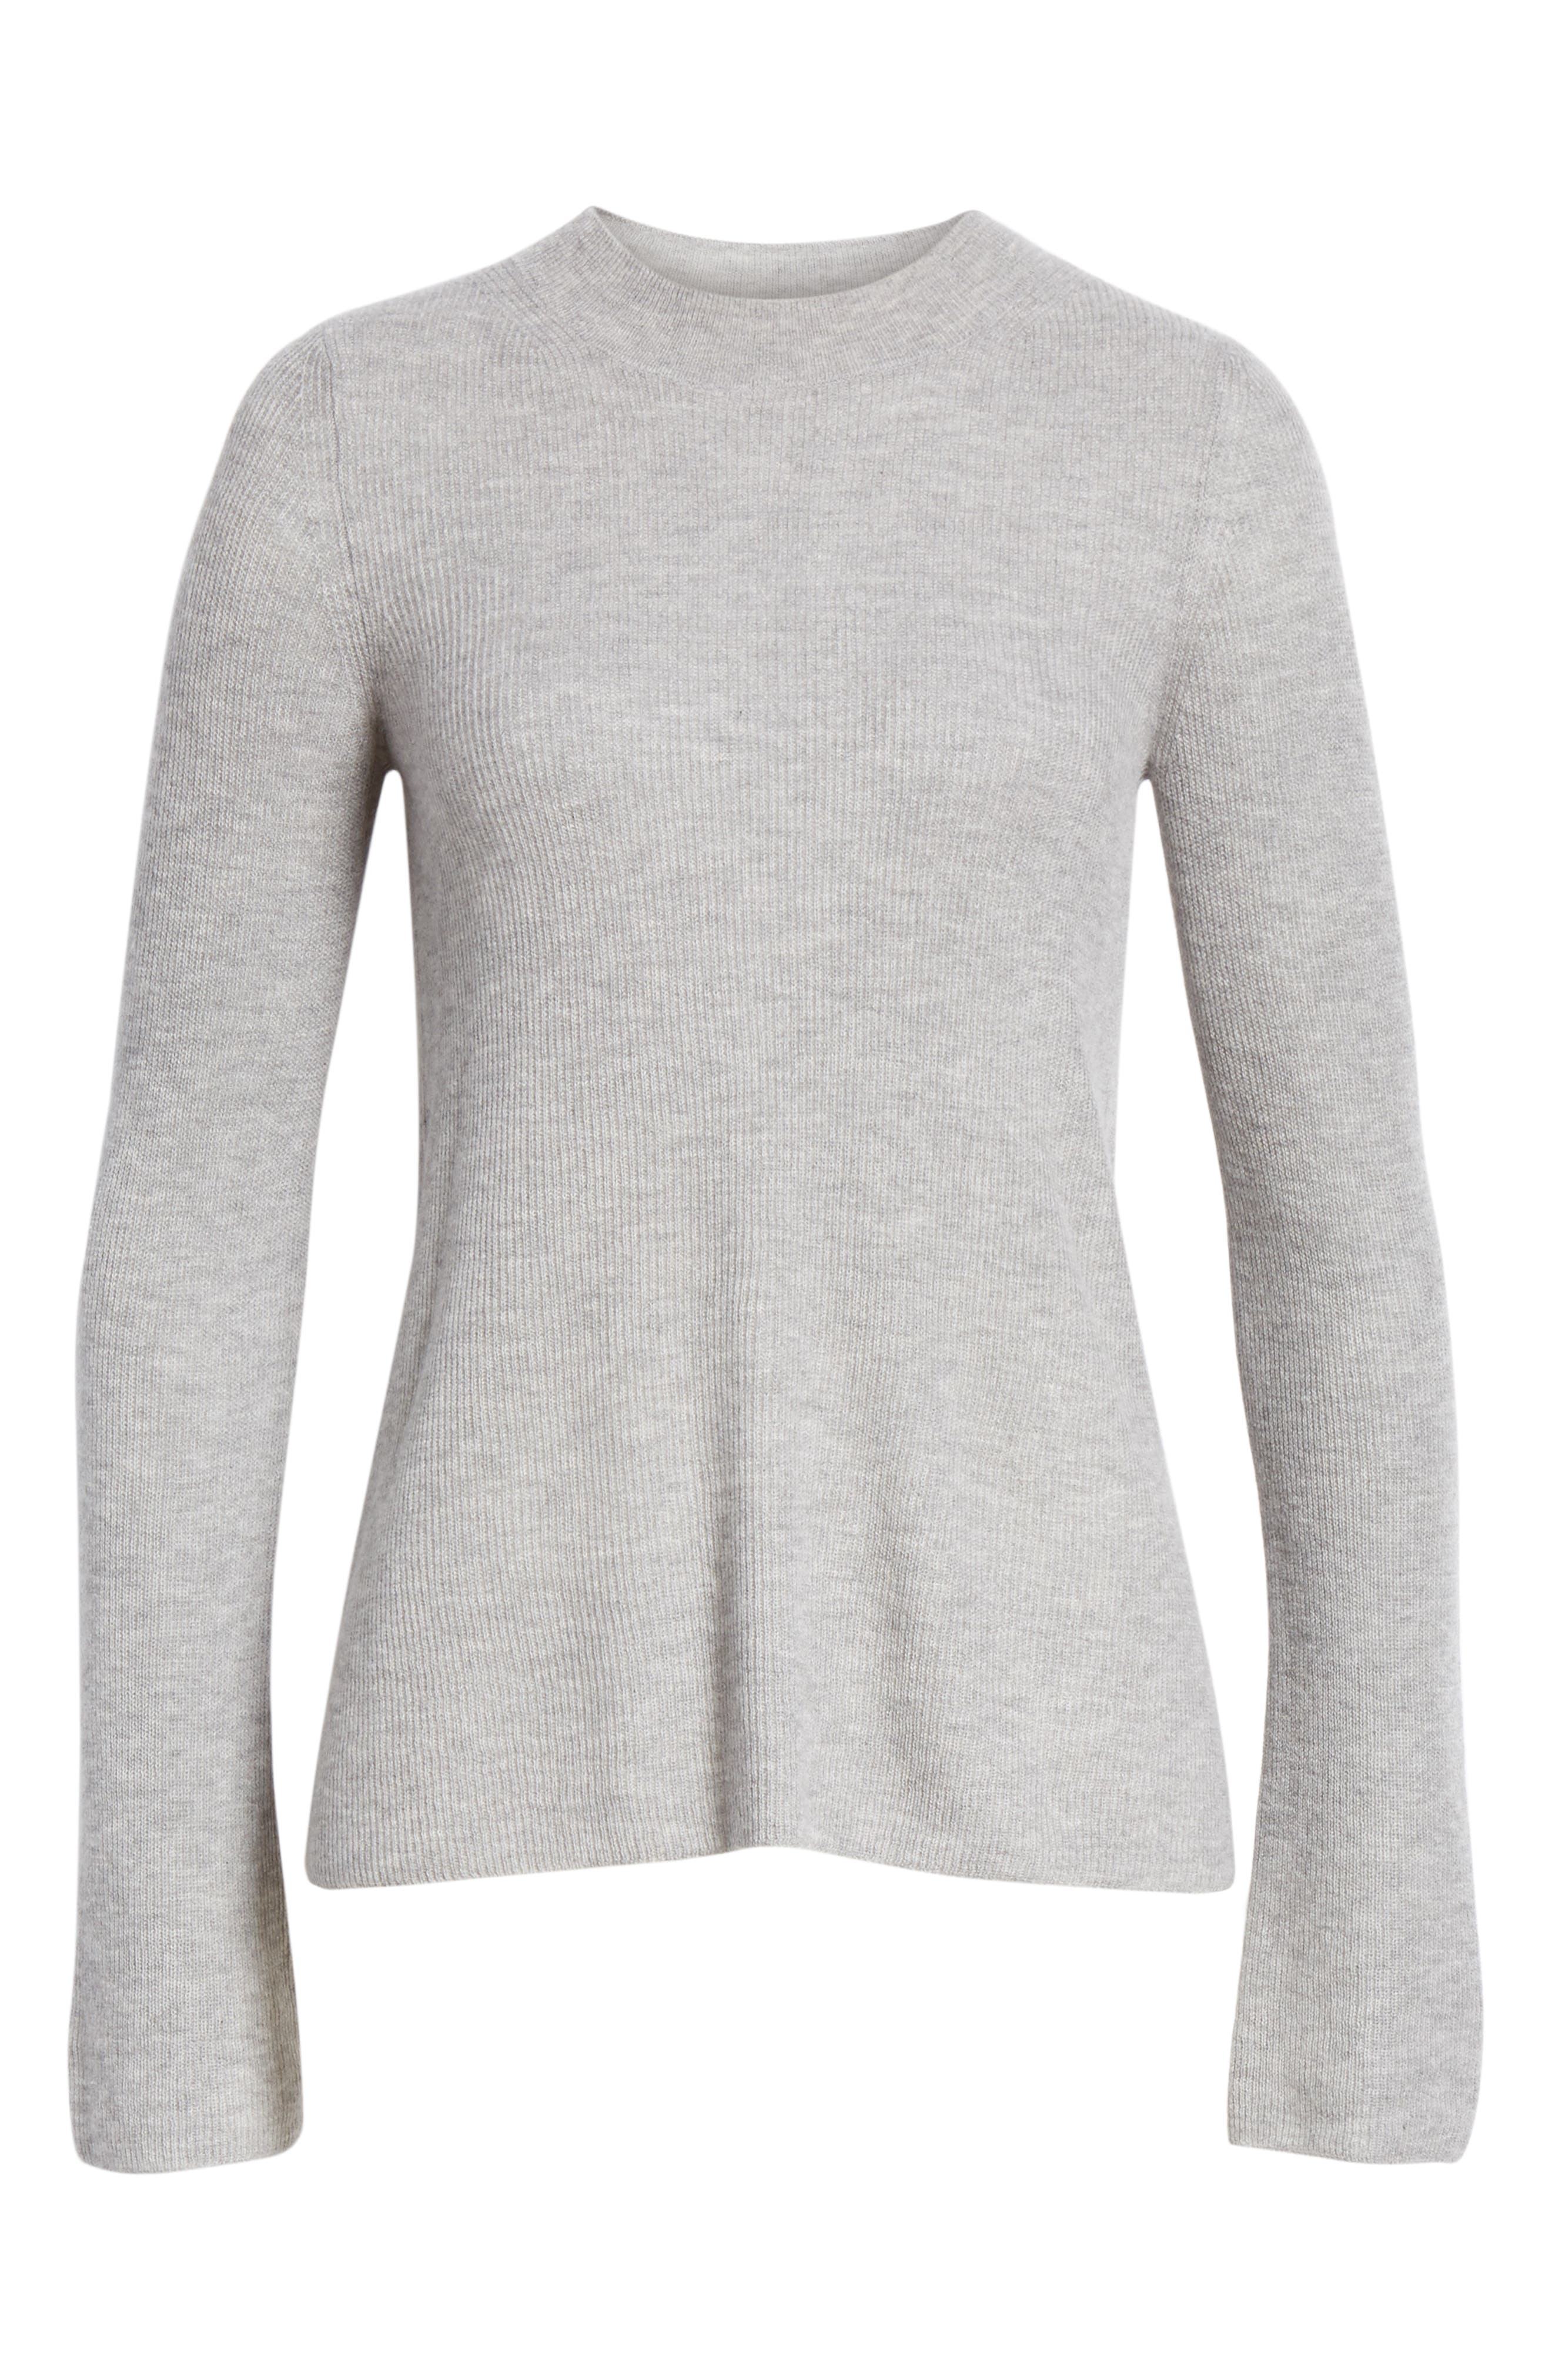 Ribbed Cashmere Sweater,                             Alternate thumbnail 6, color,                             H STEEL